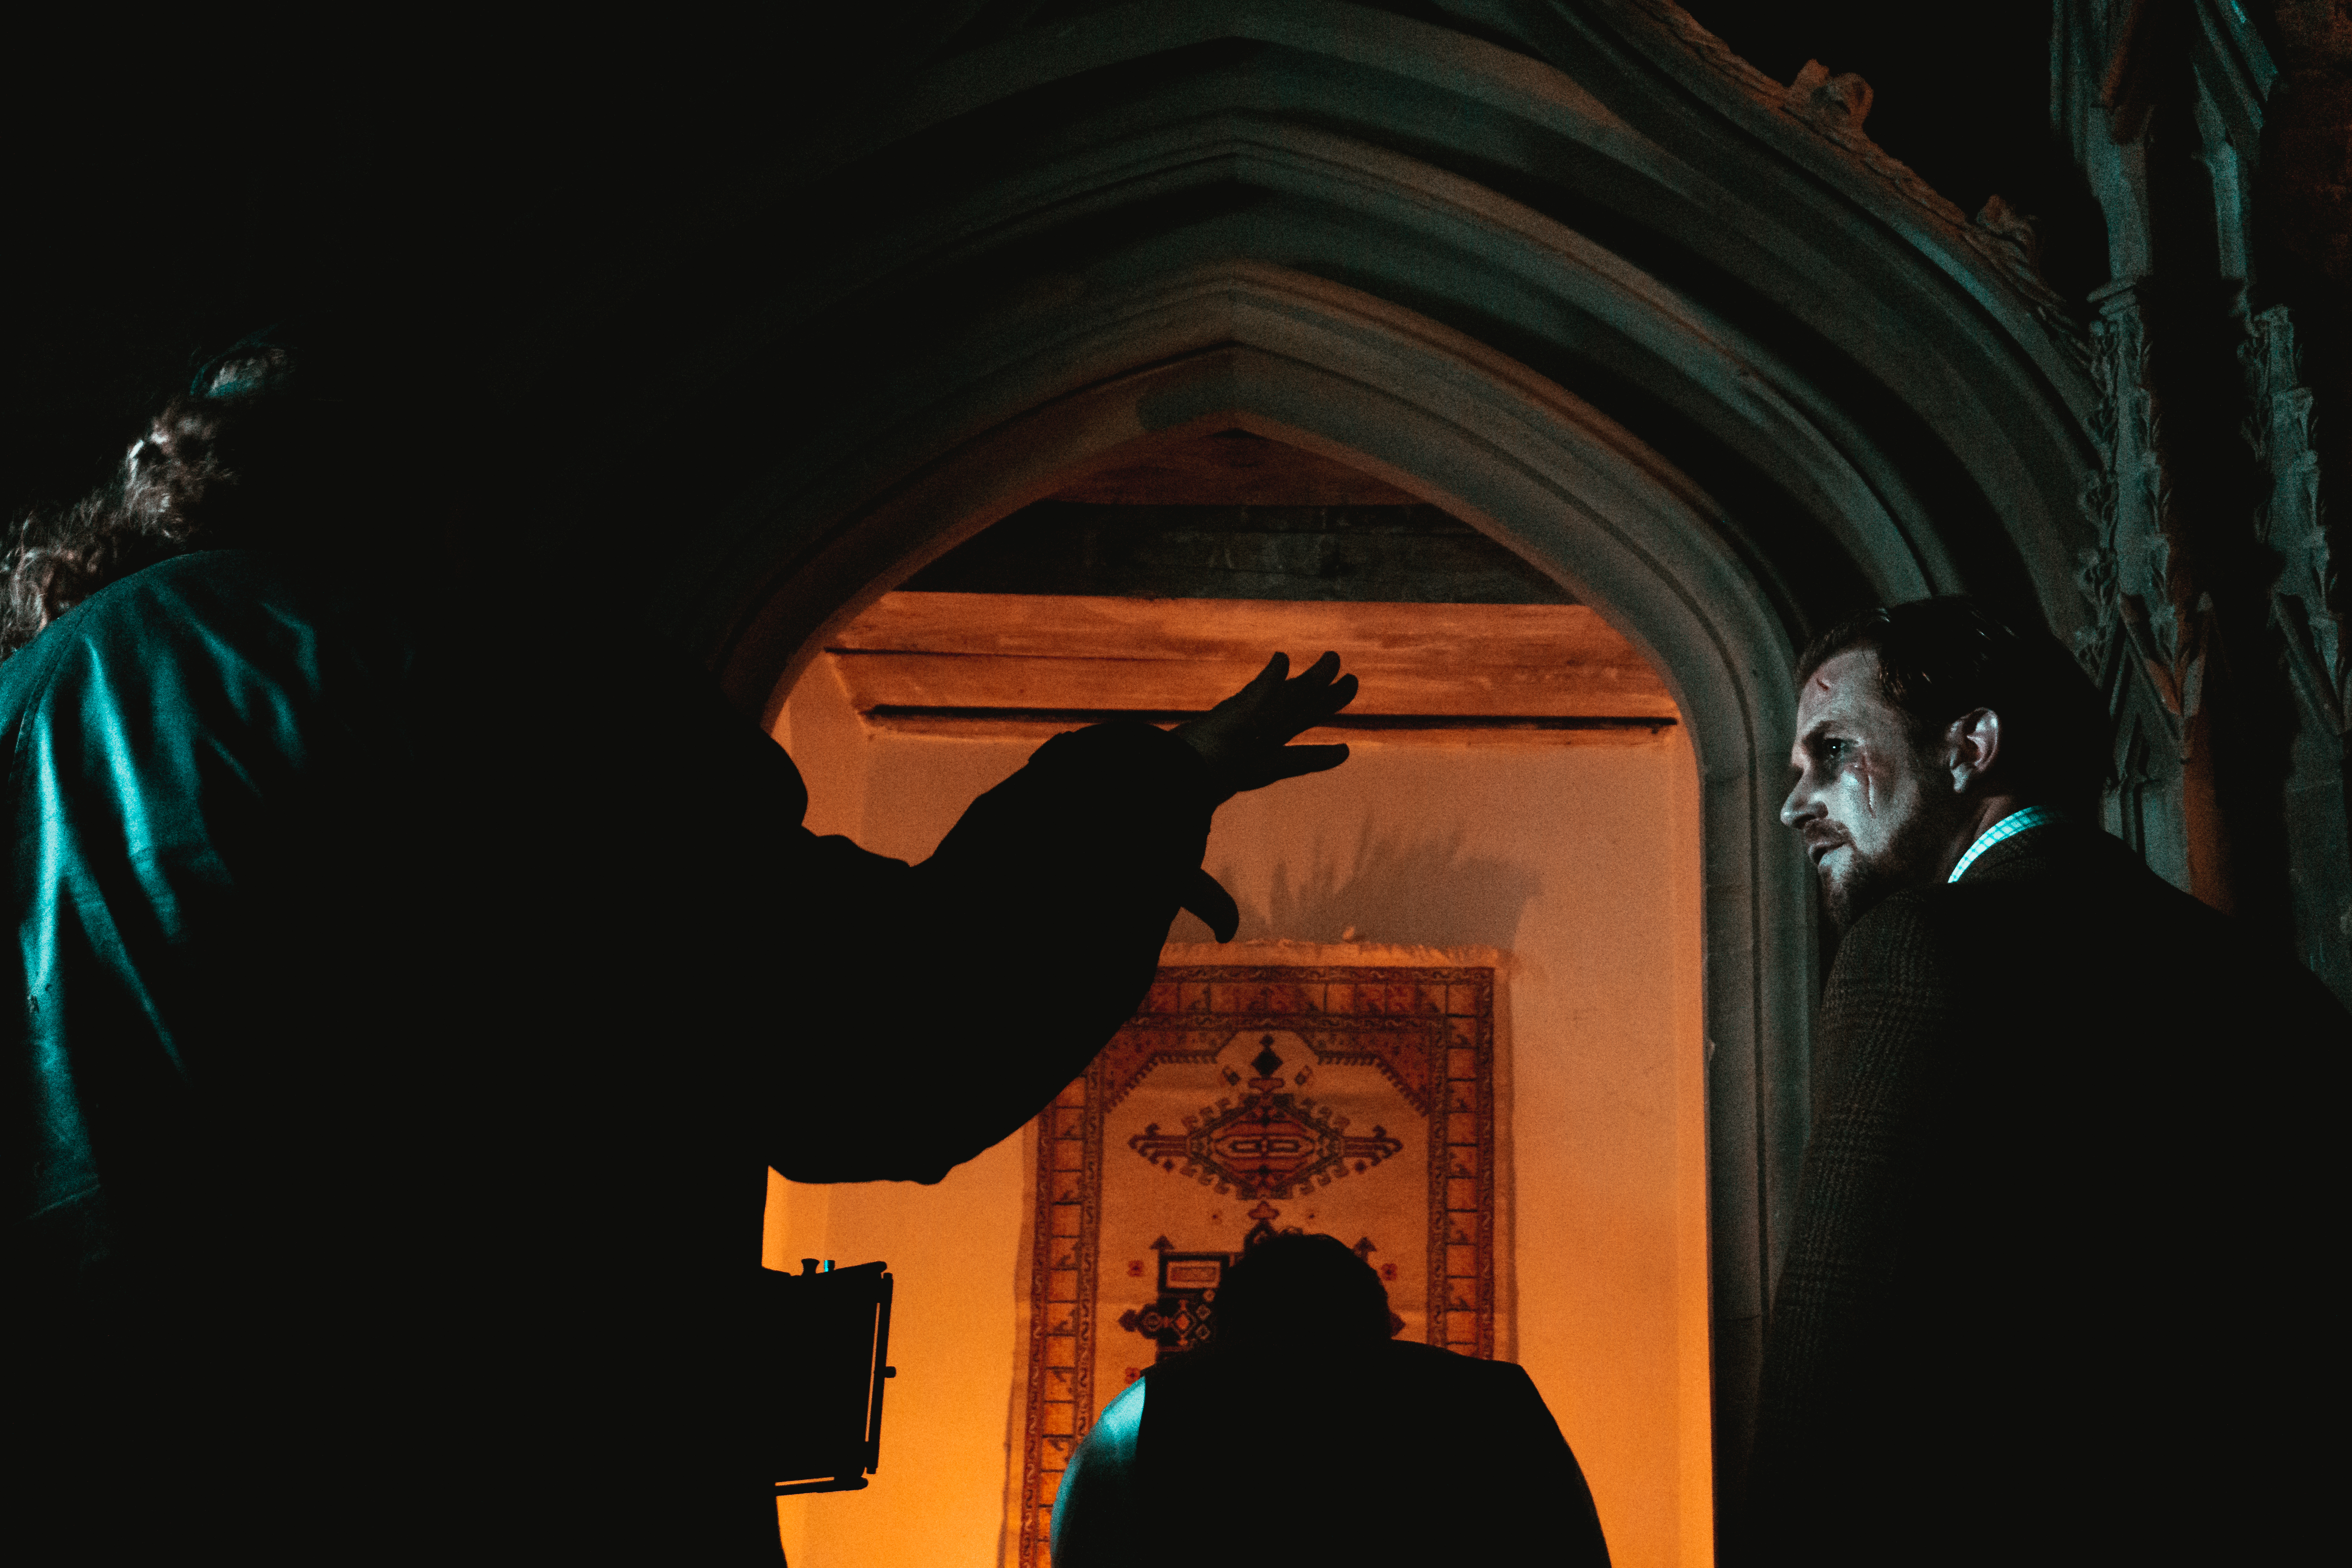 On the set of 'The Haunting of Margam Castle'.